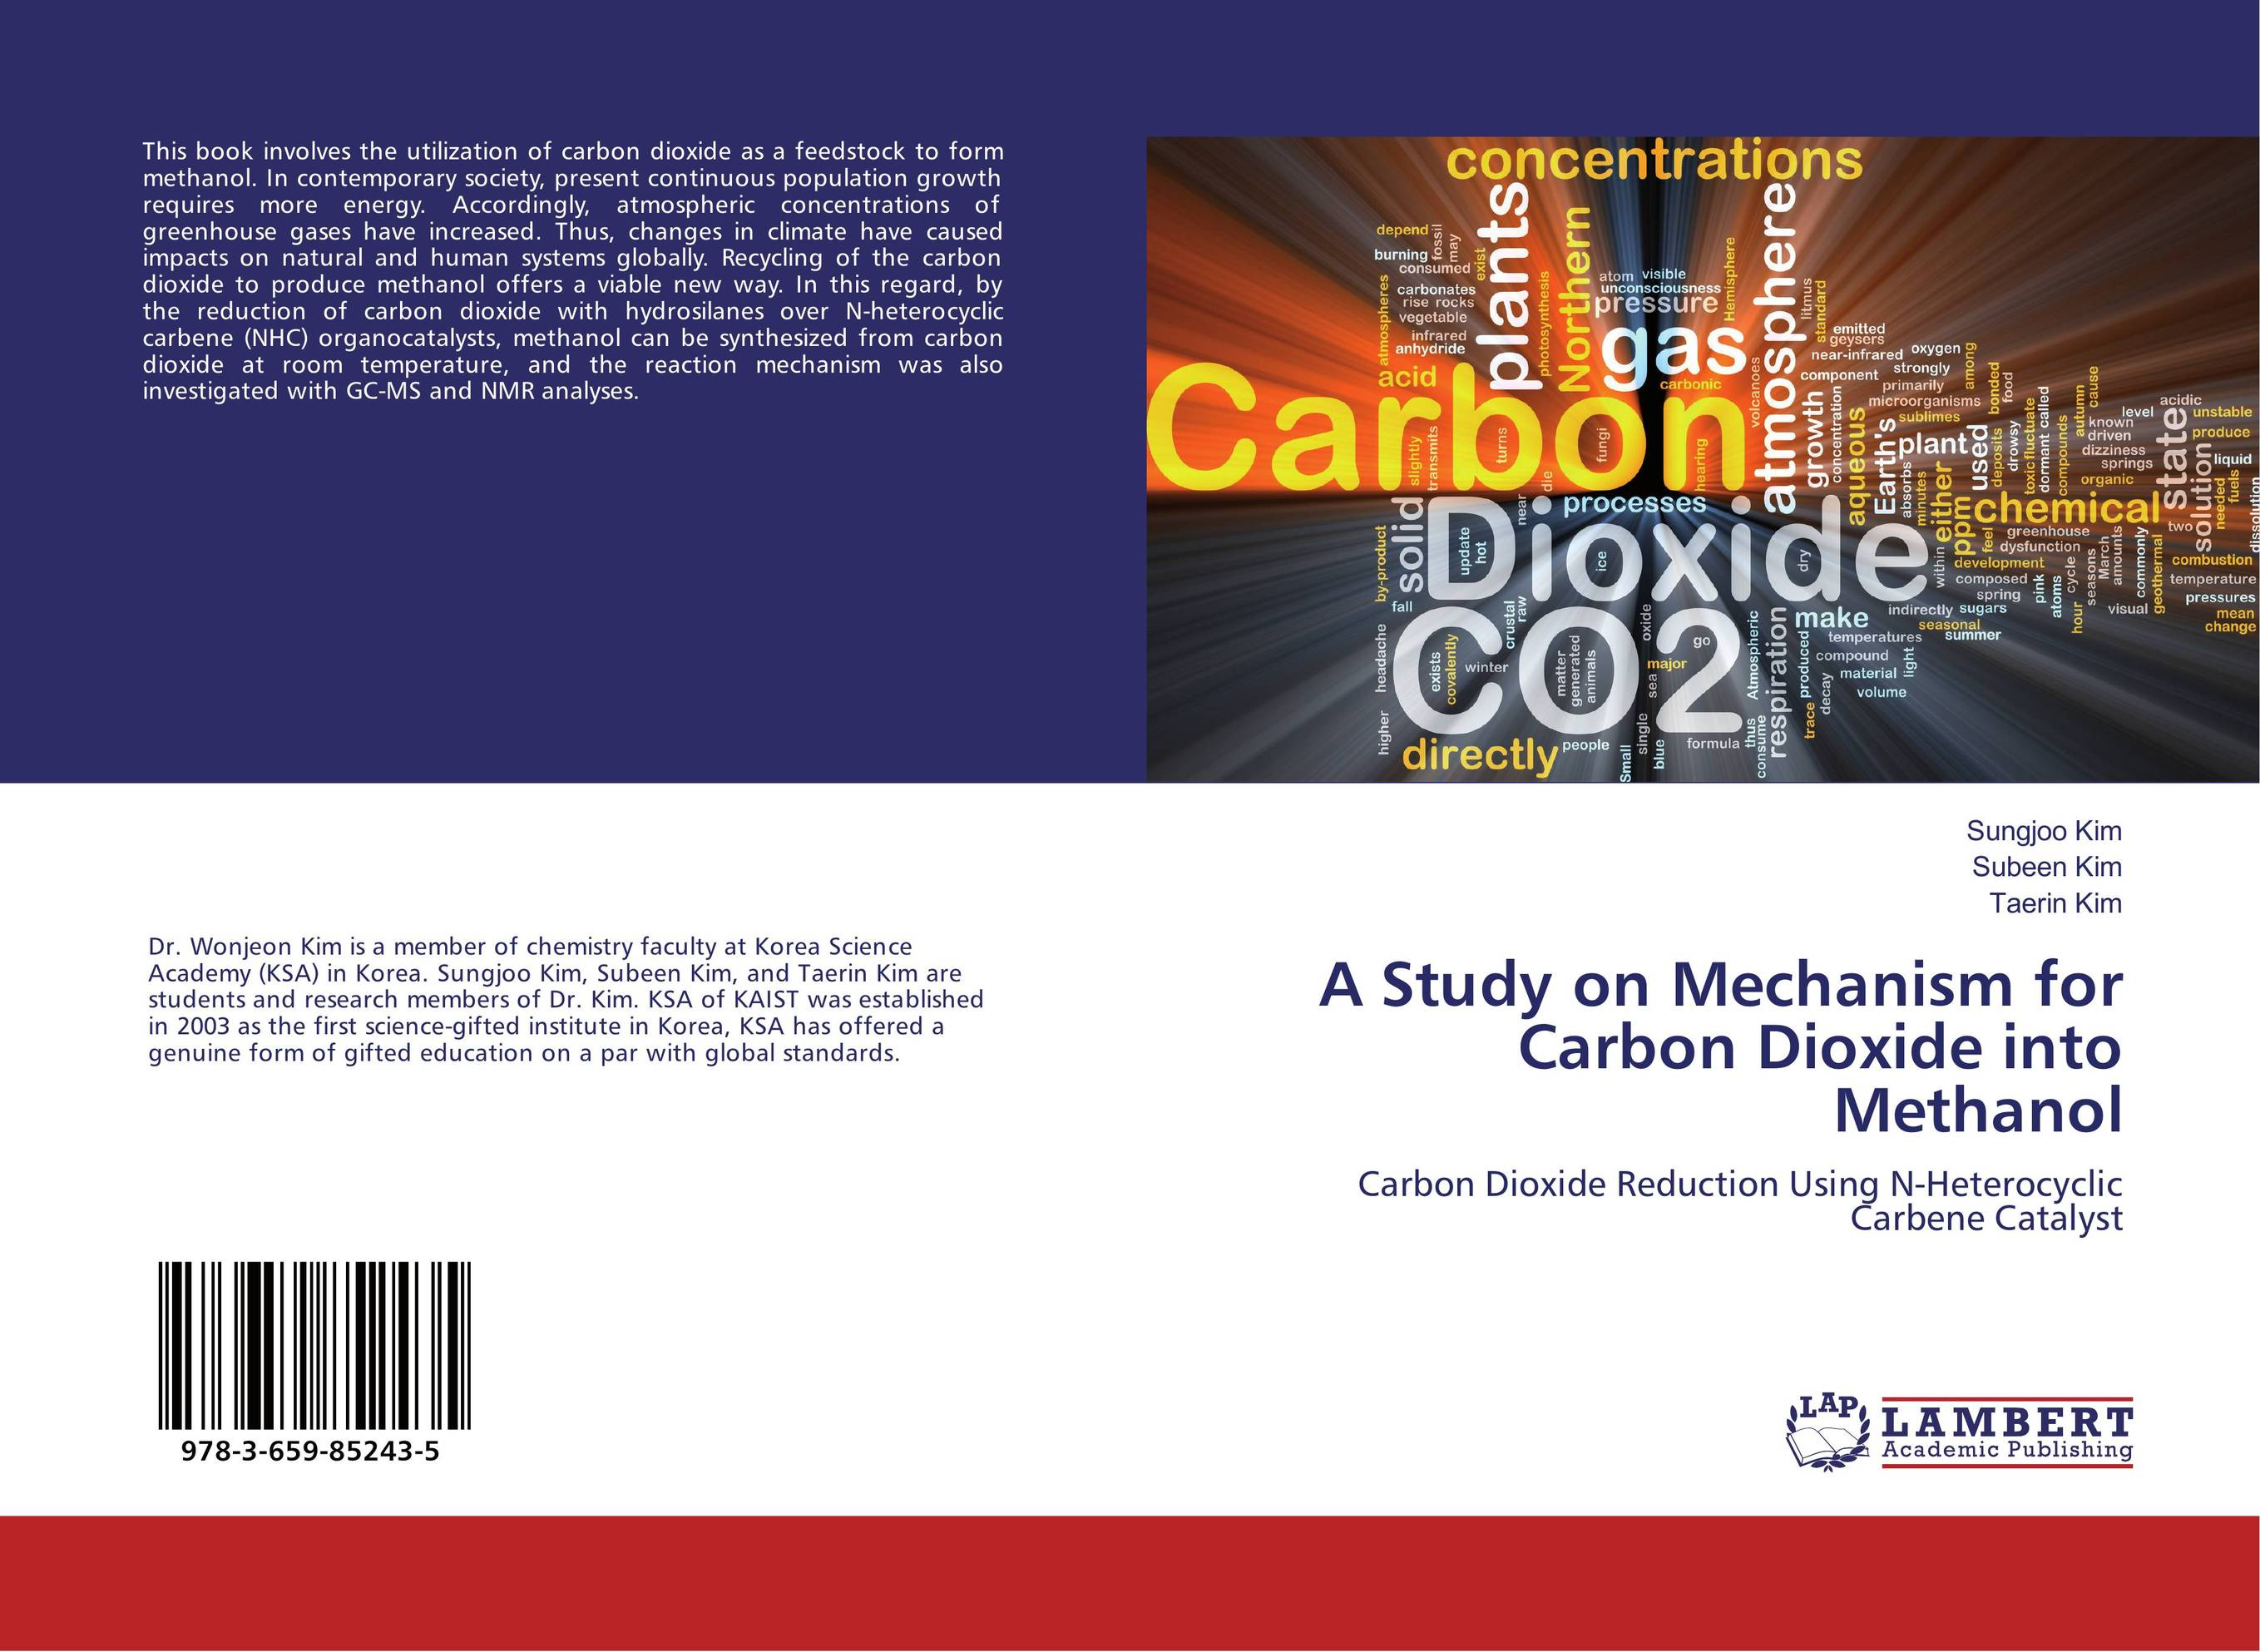 A Study on Mechanism for Carbon Dioxide into Methanol